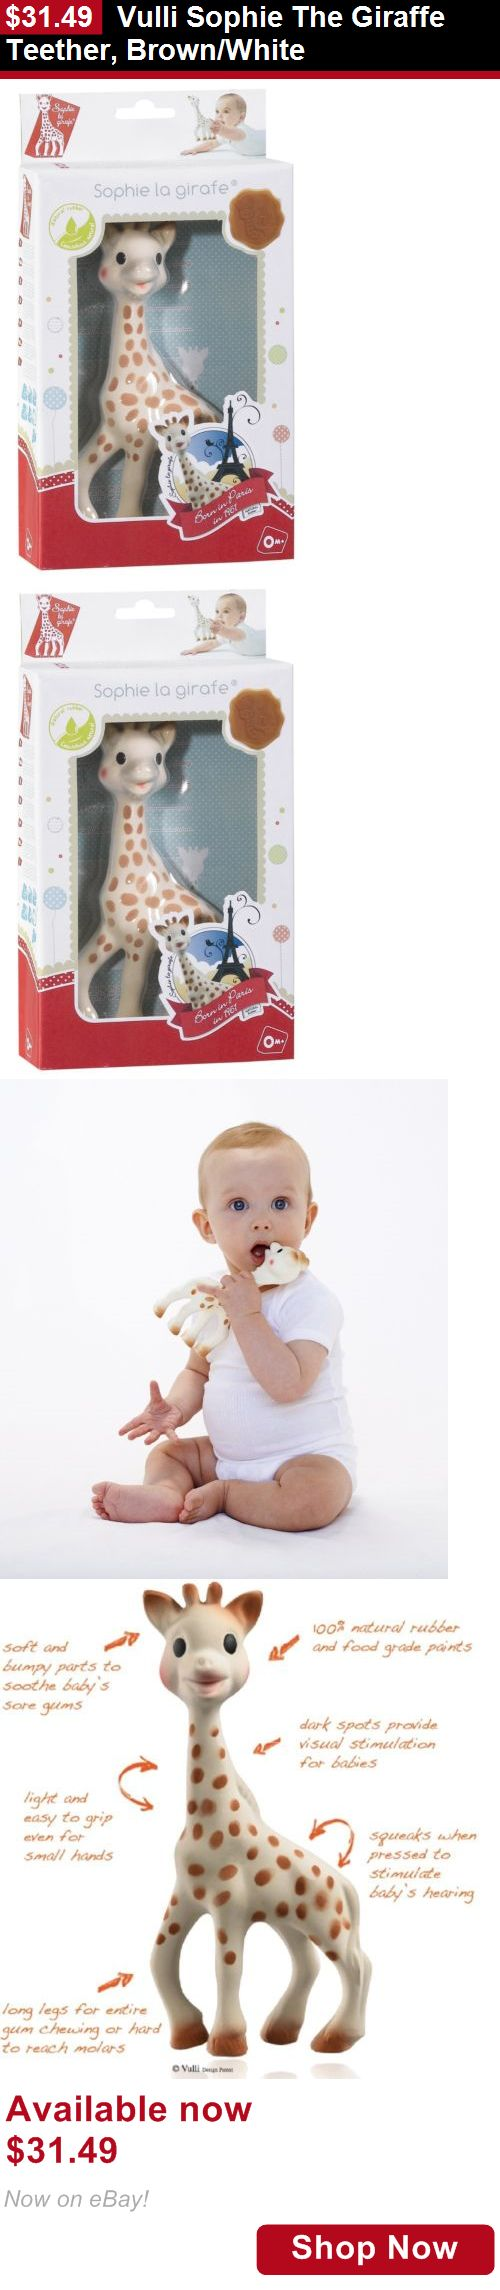 Teethers: Vulli Sophie The Giraffe Teether, Brown/White BUY IT NOW ONLY: $31.49